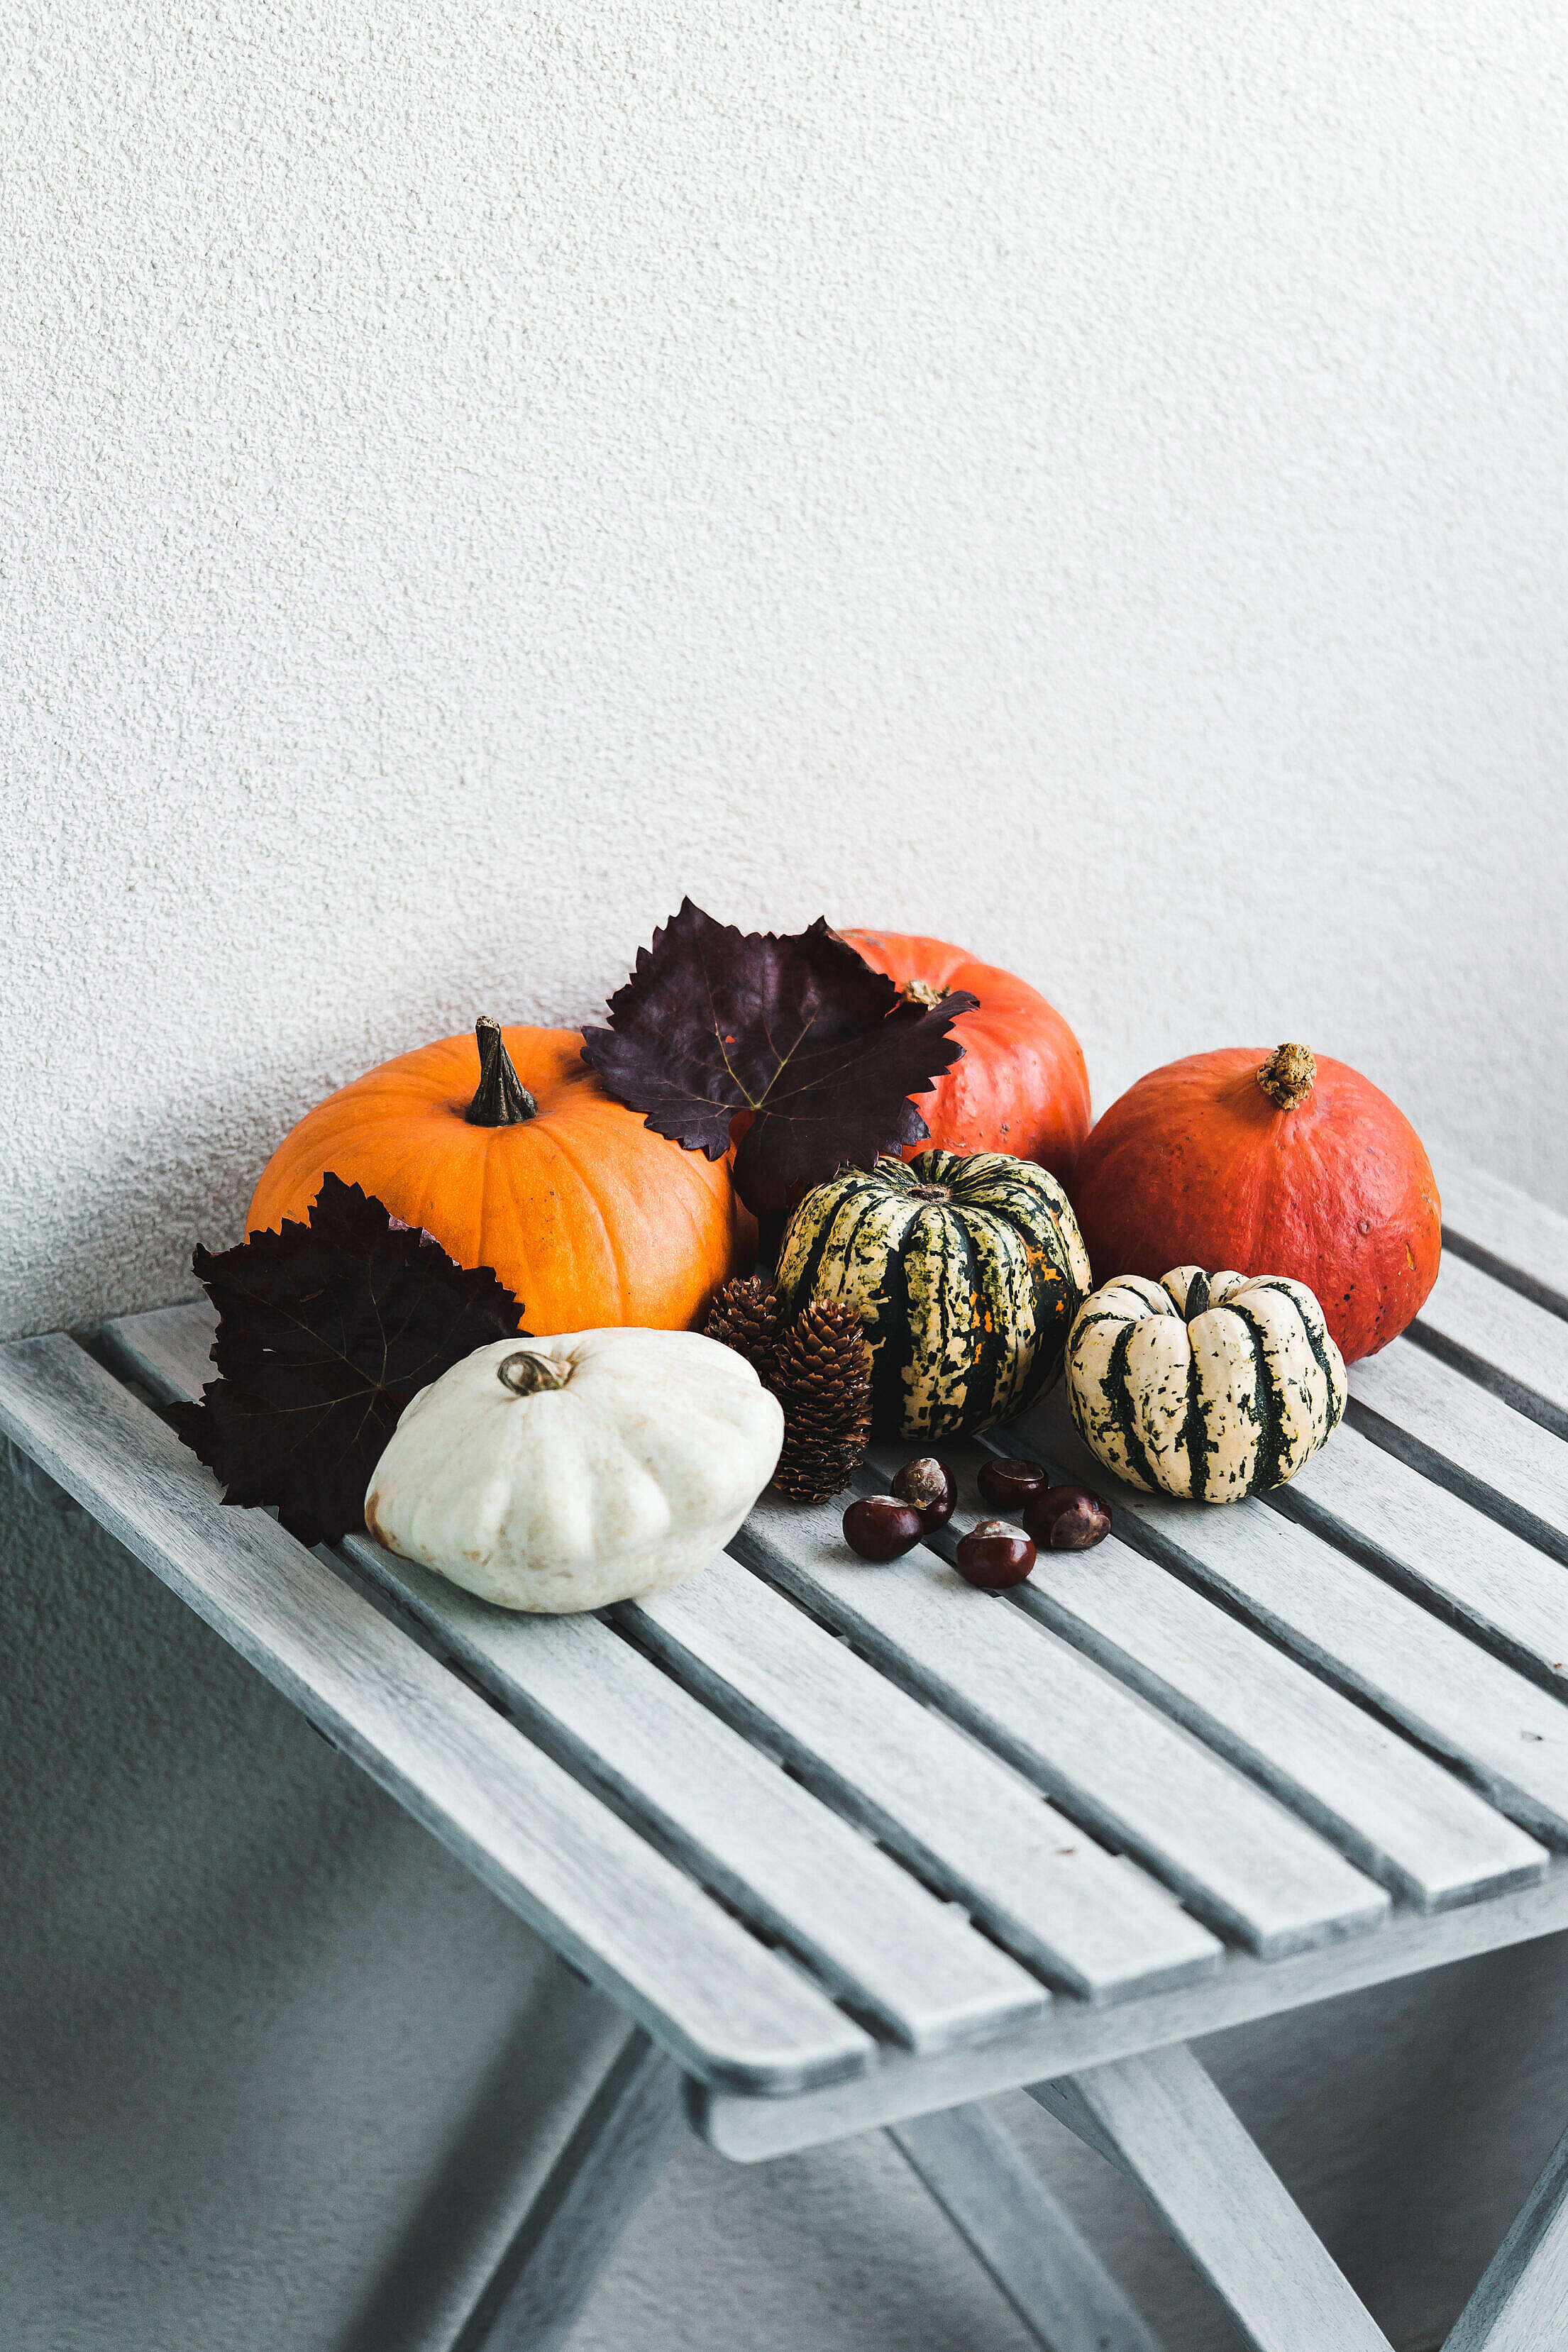 Pumpkins in Different Shapes as Fall Decorations Free Stock Photo